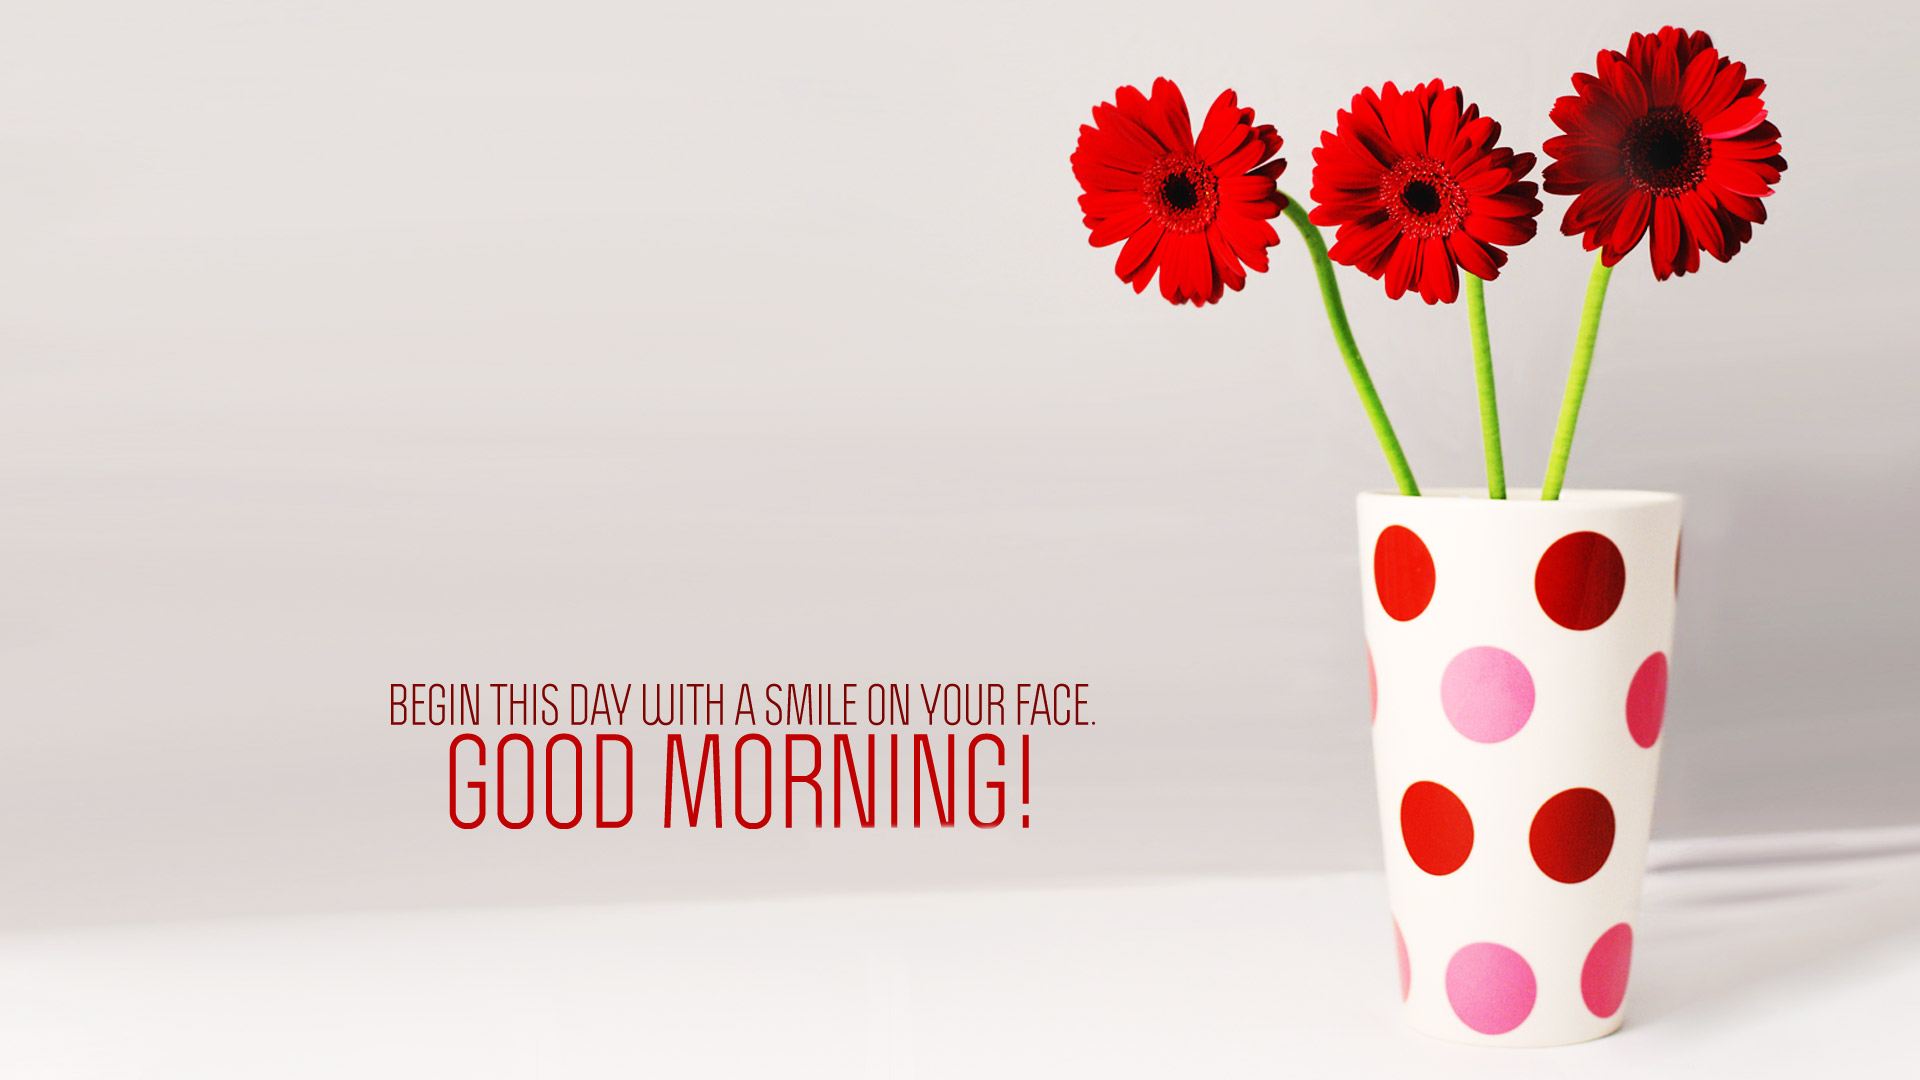 Good Morning Flowers Hd Wallpapers And Images Download May You Get Well Soon 1920x1080 Download Hd Wallpaper Wallpapertip